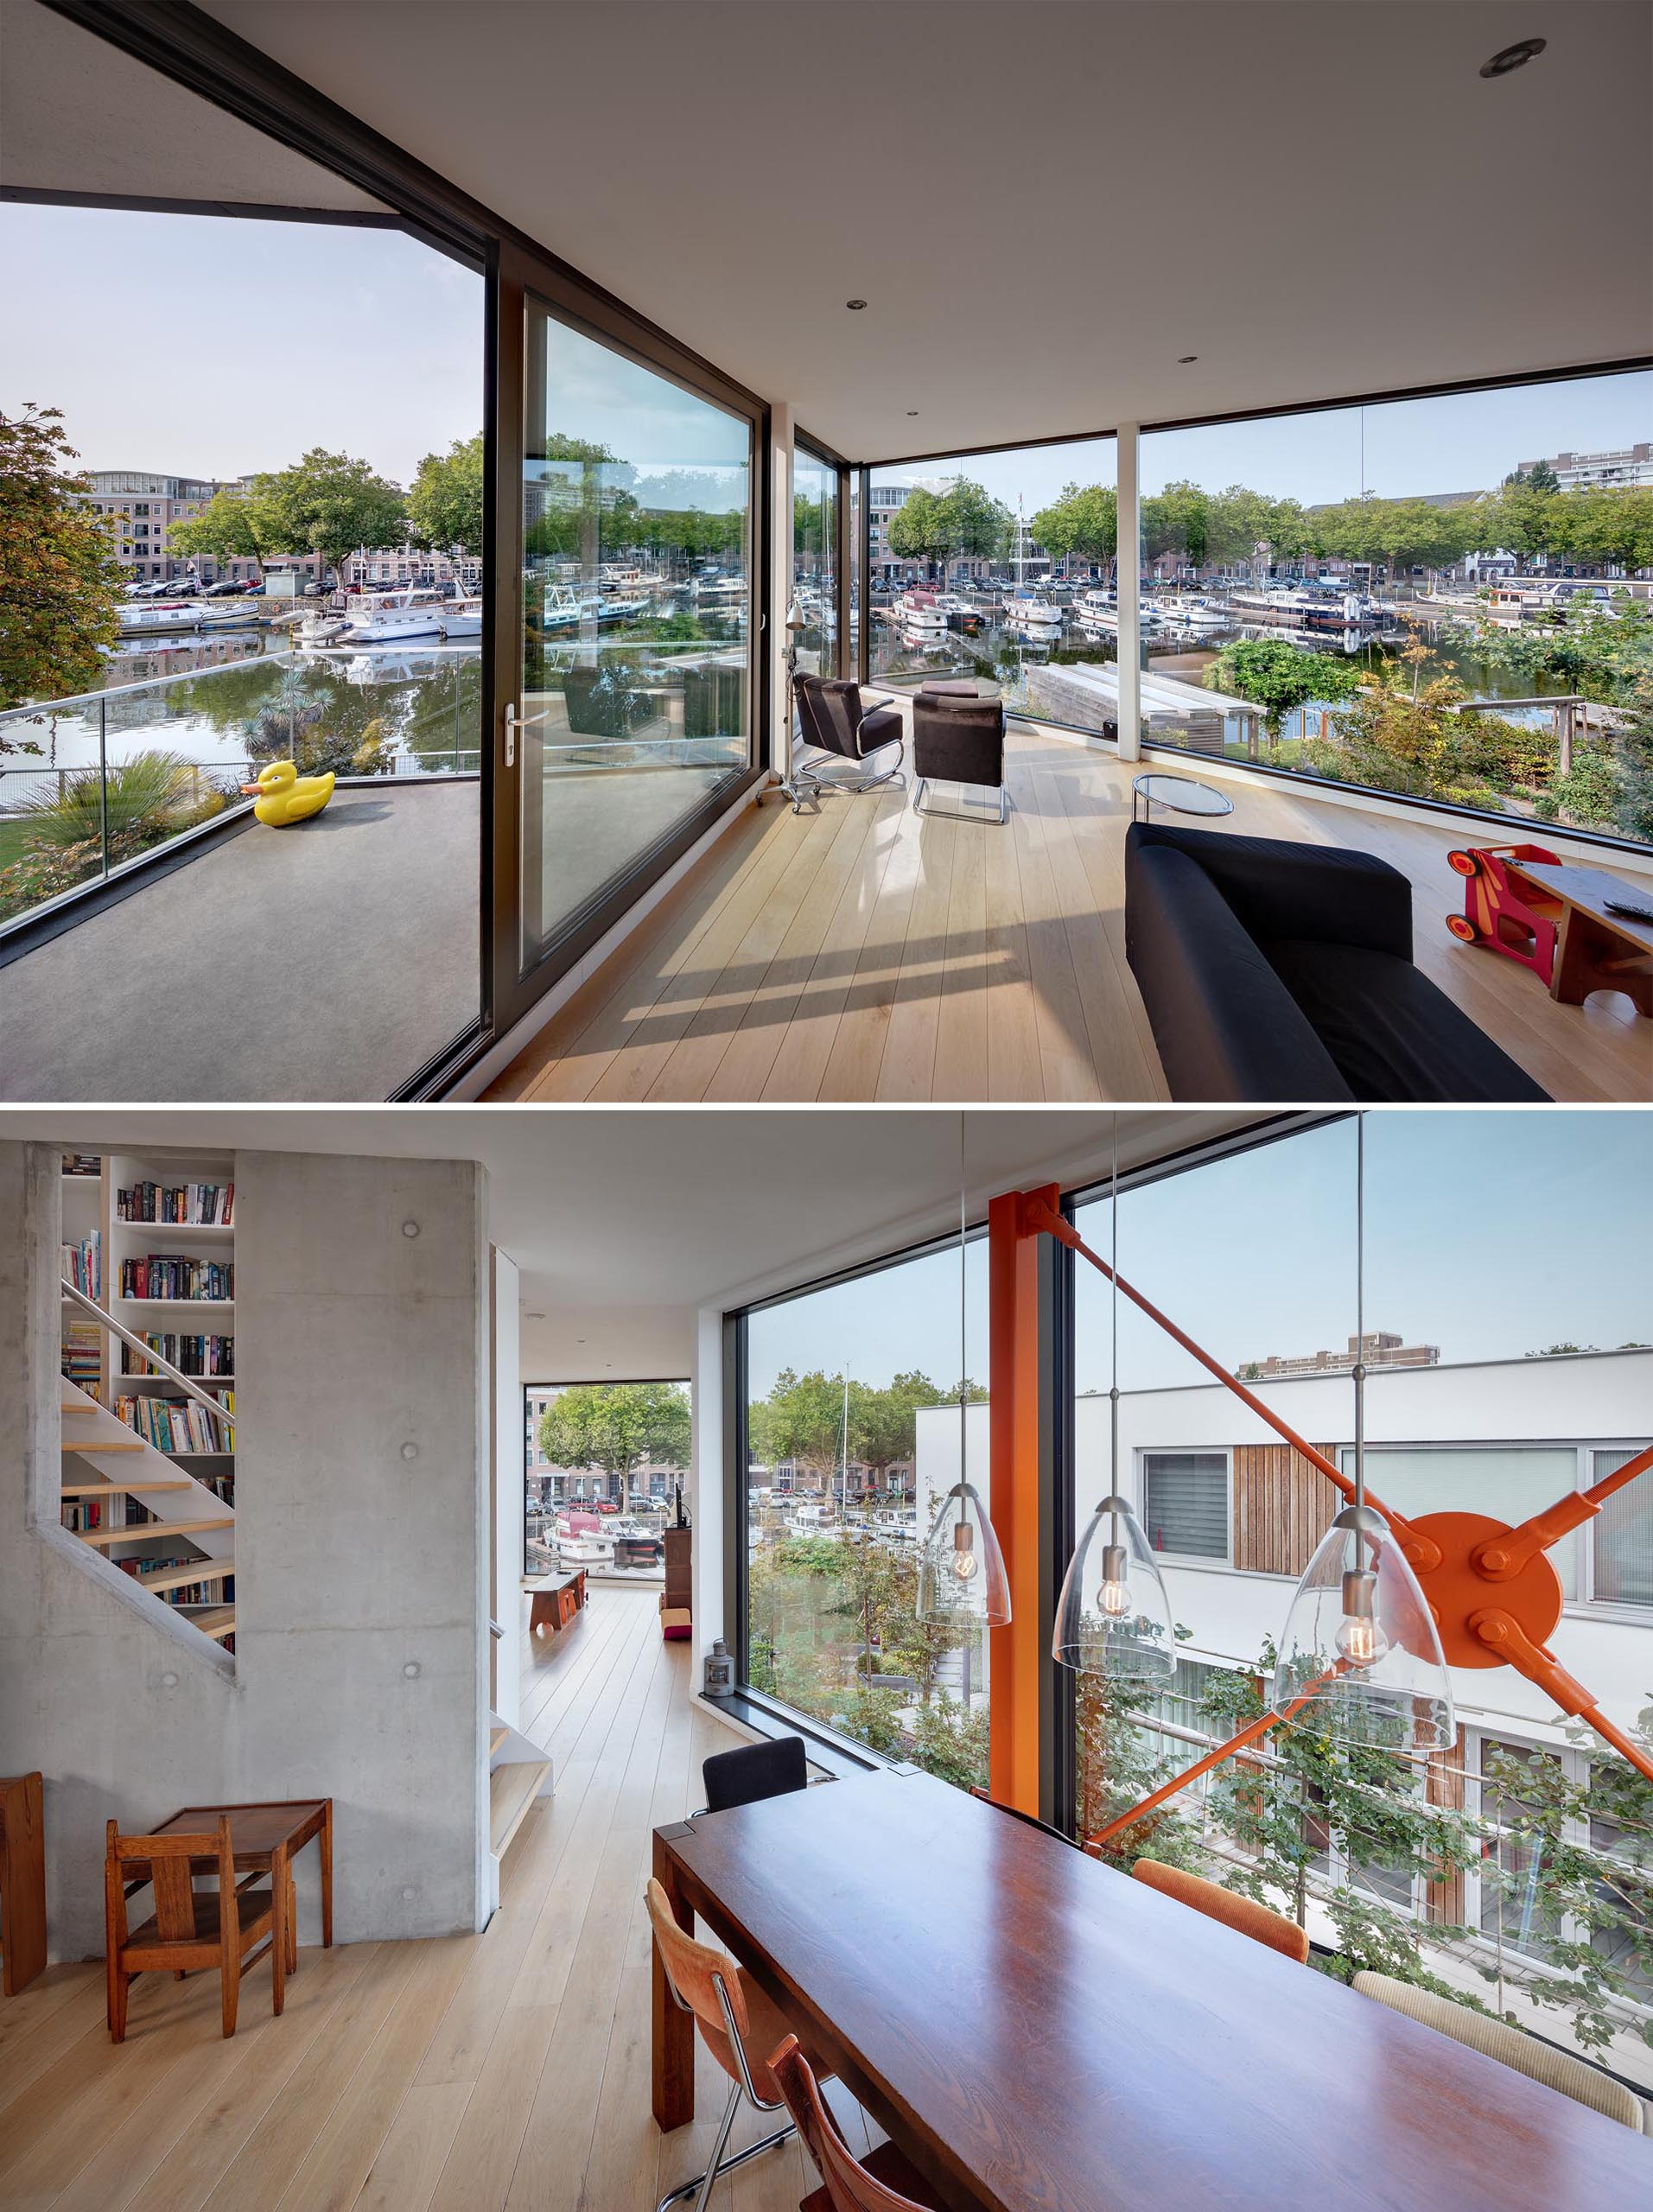 Glass walls provide unobstructed views.